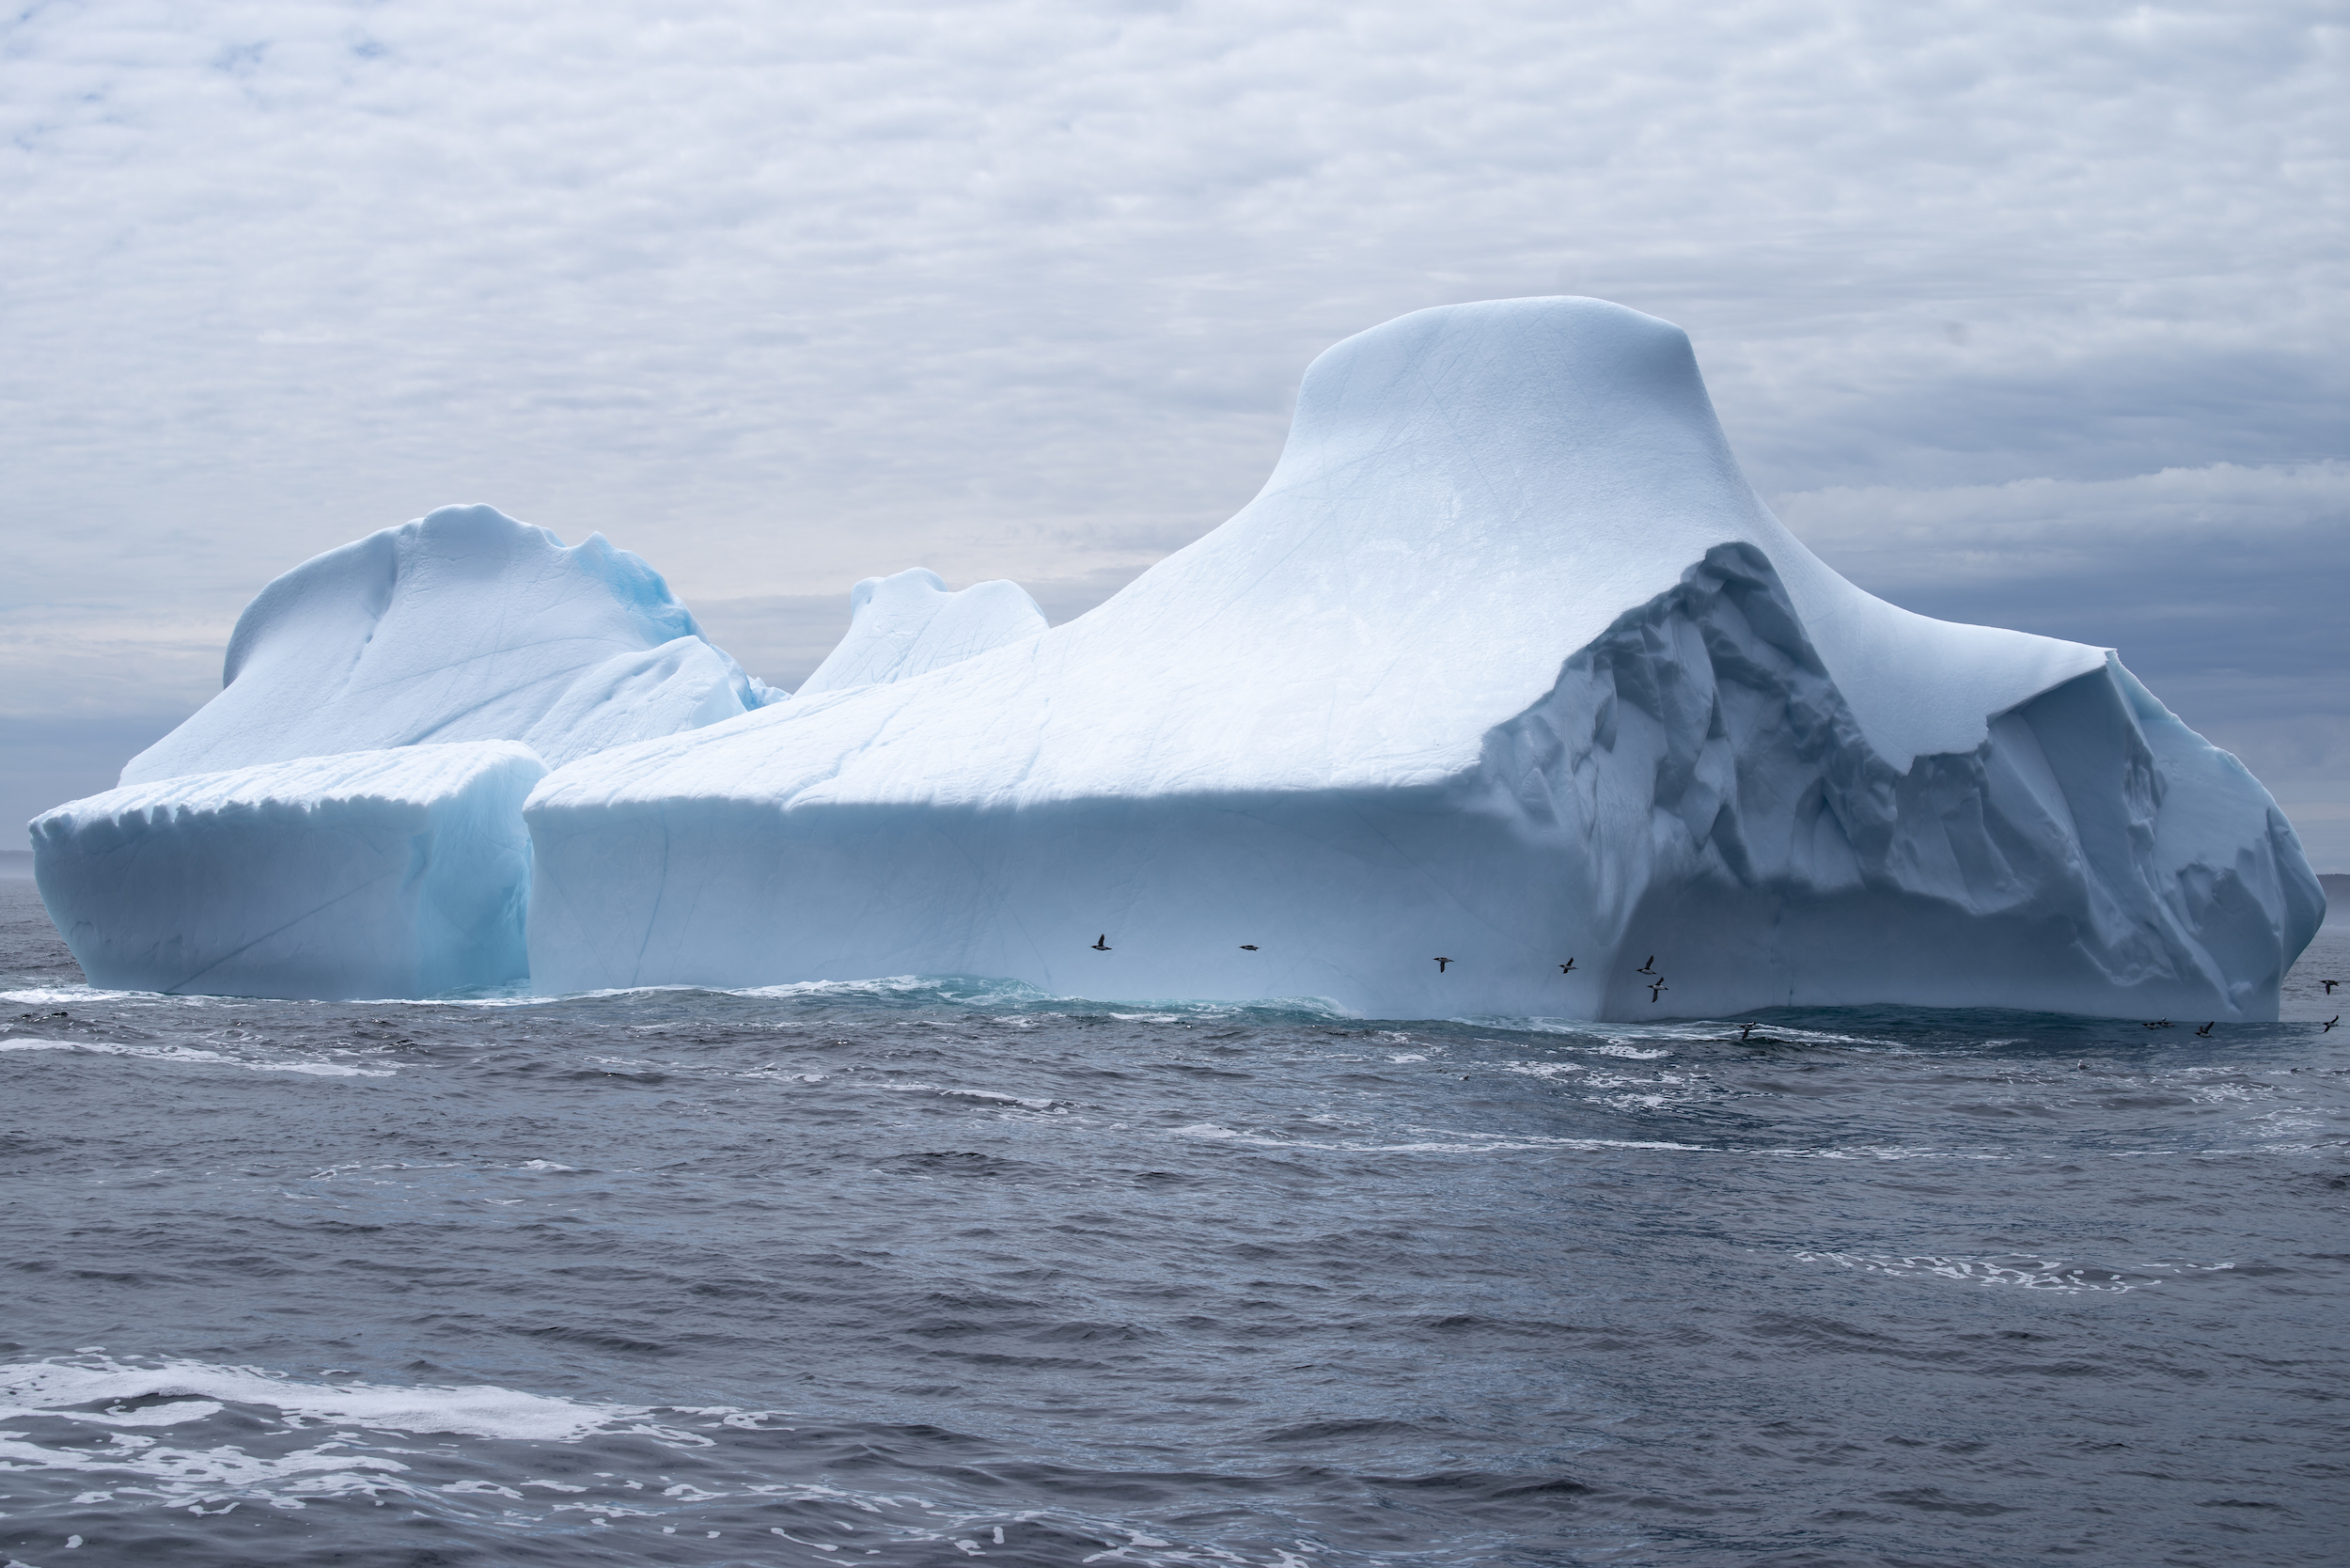 A flock of guillomots on an iceberg fly-by.